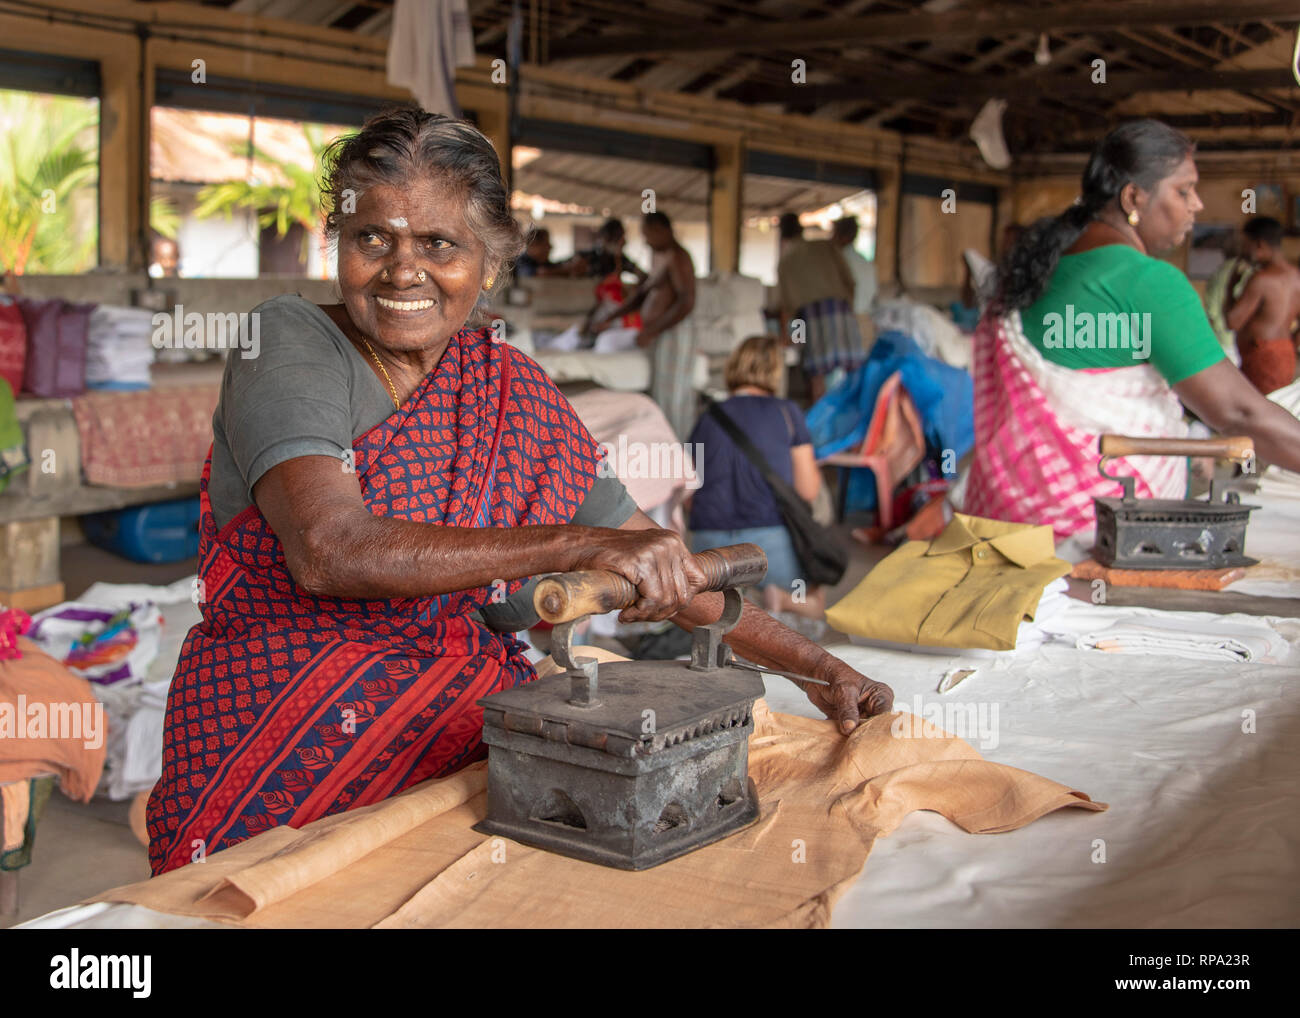 A smiling happy Indian woman ironing at Dhobi khana public laundry in fort Kochi using a traditional old iron box. - Stock Image